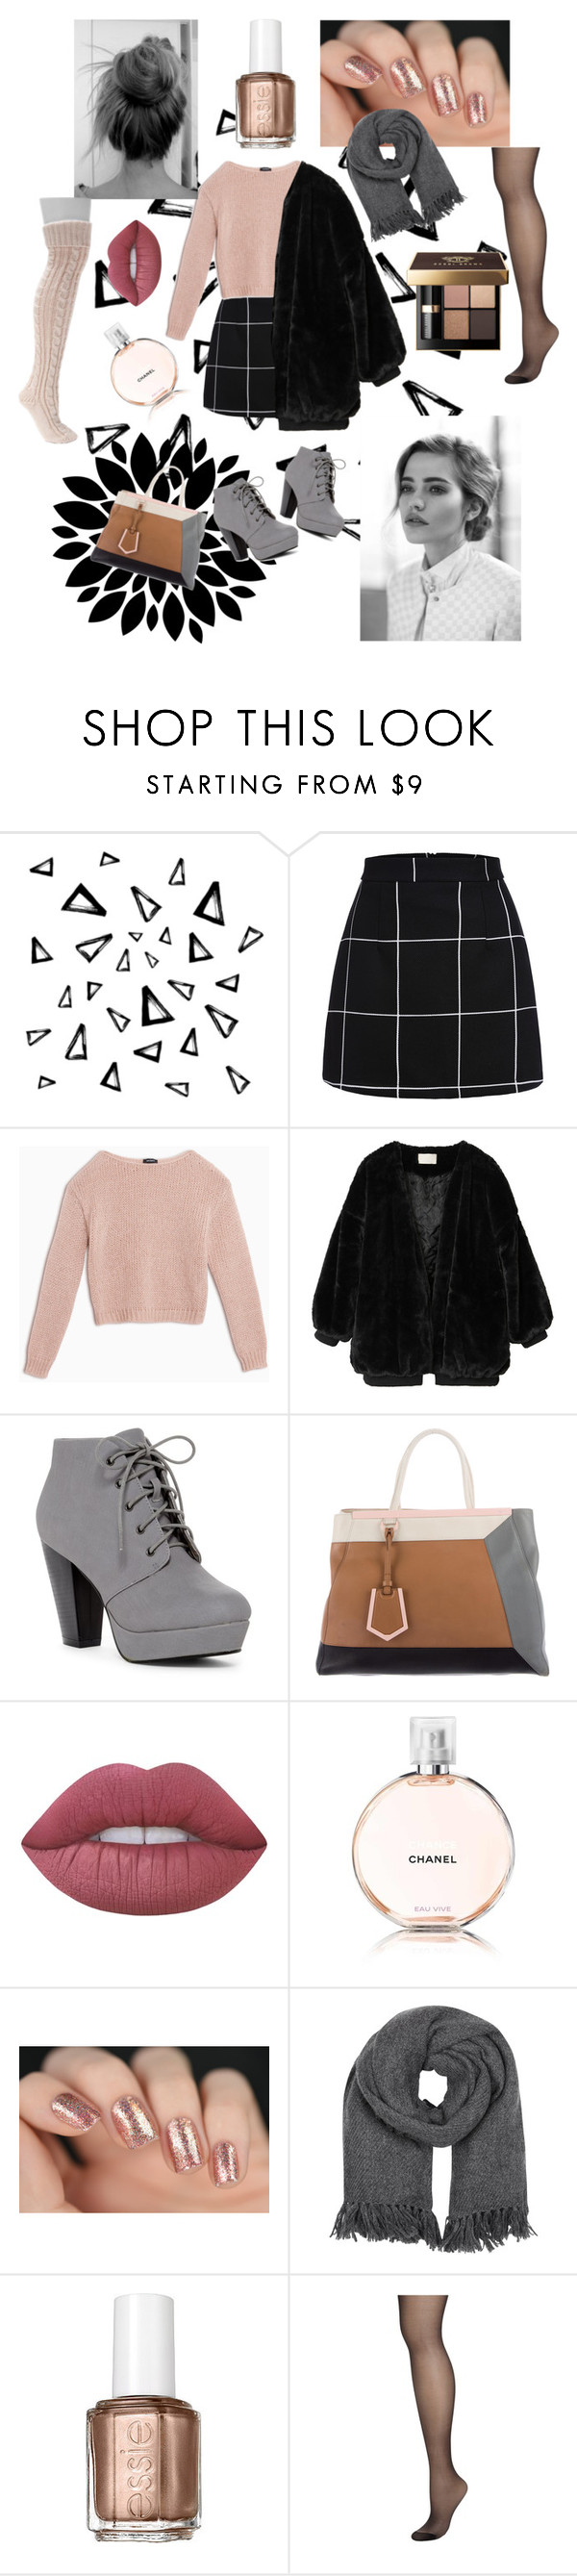 """""""yass"""" by noortje-bisschop ❤ liked on Polyvore featuring Nika, Max&Co., Fendi, Bobbi Brown Cosmetics, Lime Crime, Chanel, Isabel Marant, Essie, Pretty Polly and Muk Luks"""